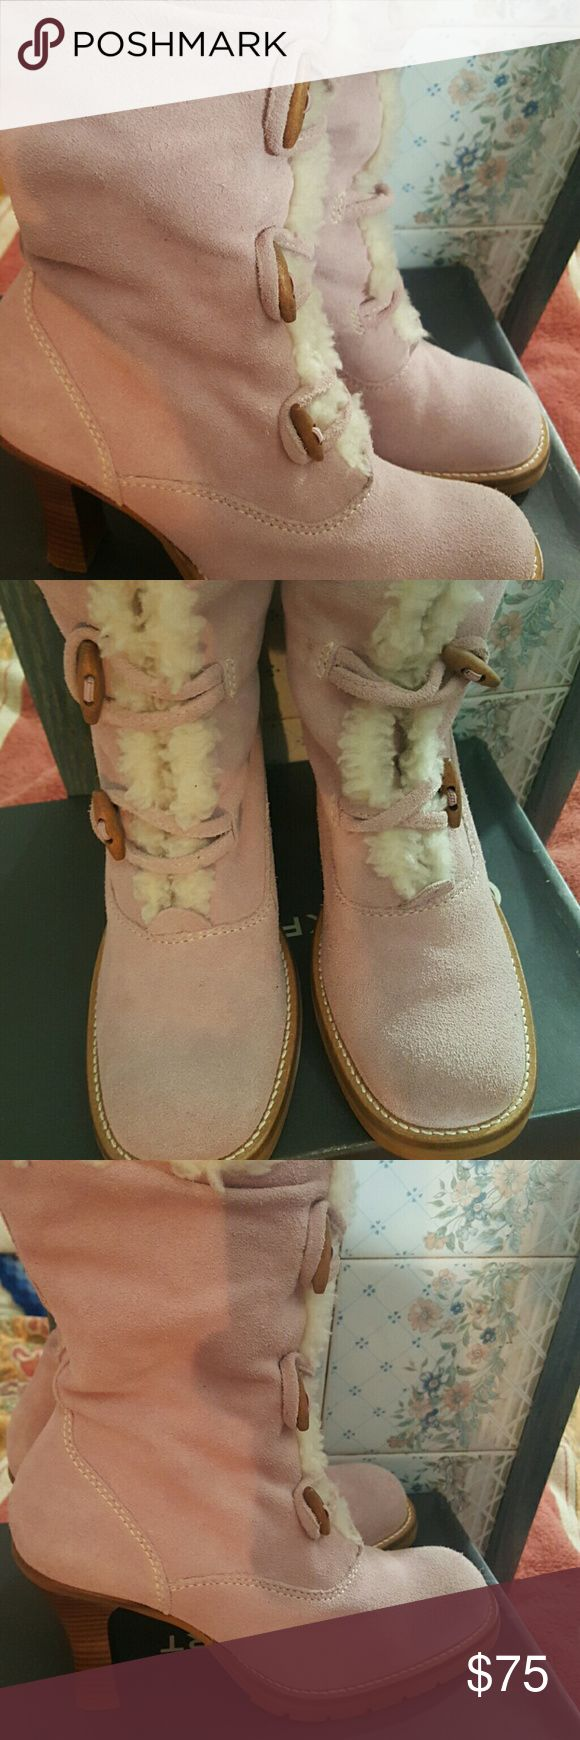 Suede boots Sweetest pink ,fully linned with taggle buttons genuine wood soles, rubber botten slip proof these boots are well made conffe too!wore them a total of a couple hrs.sz10 made in Brazil Steve madden for the Steve madden boutique Shoes Heeled Boots